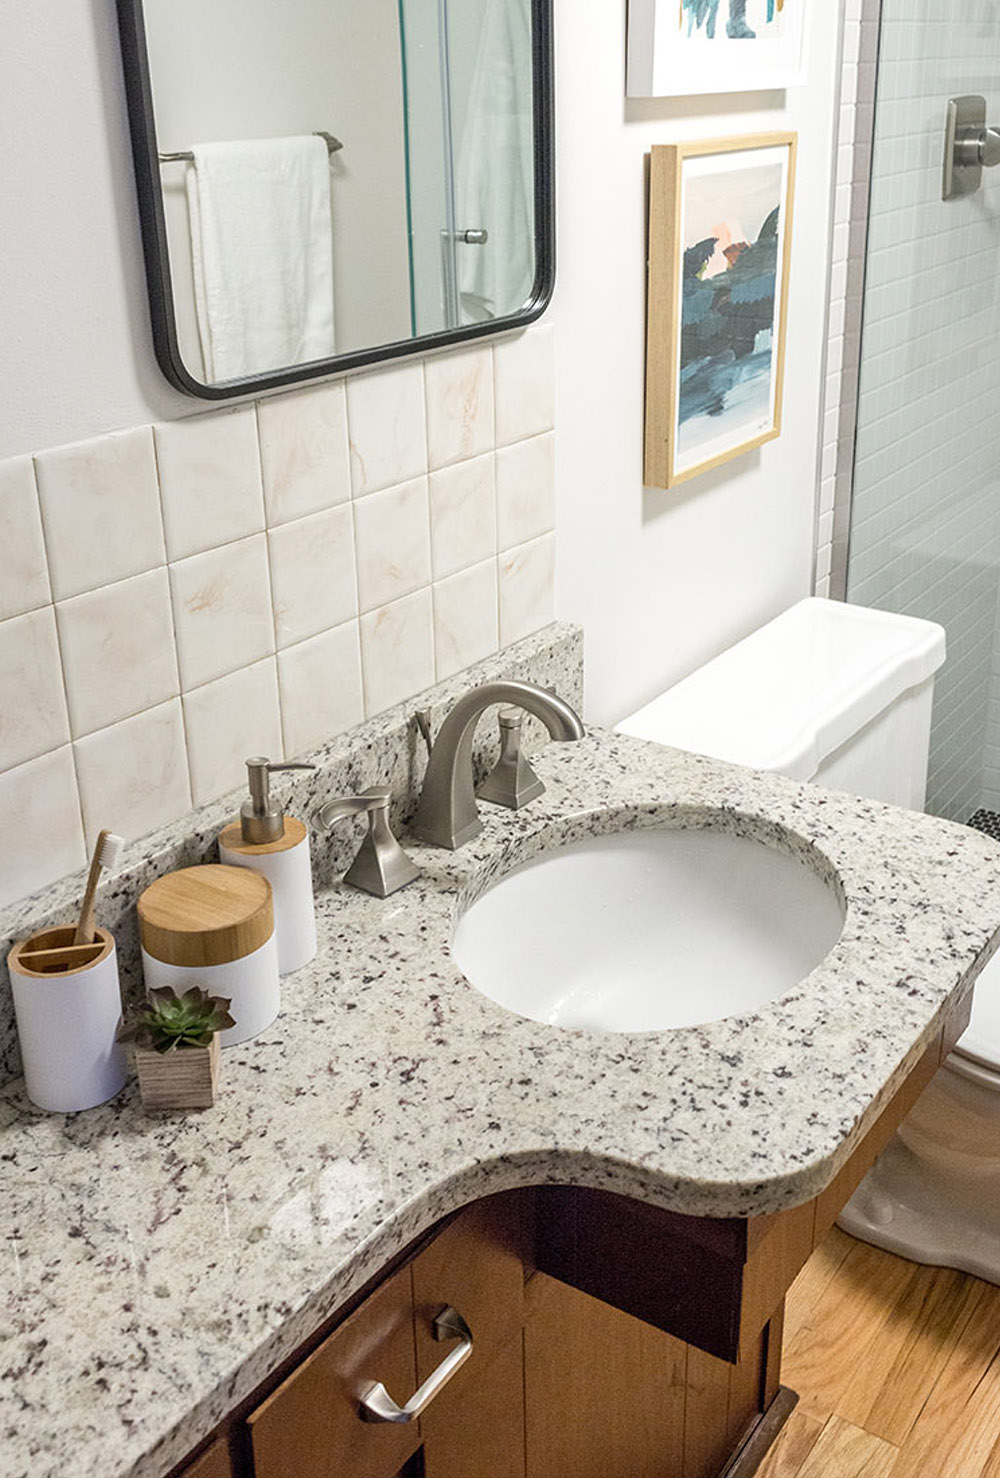 Marble bathroom countertop with a white hand towel, silver appliances and white soap dispenser, cream wall tile, a mirror and framed wall art.